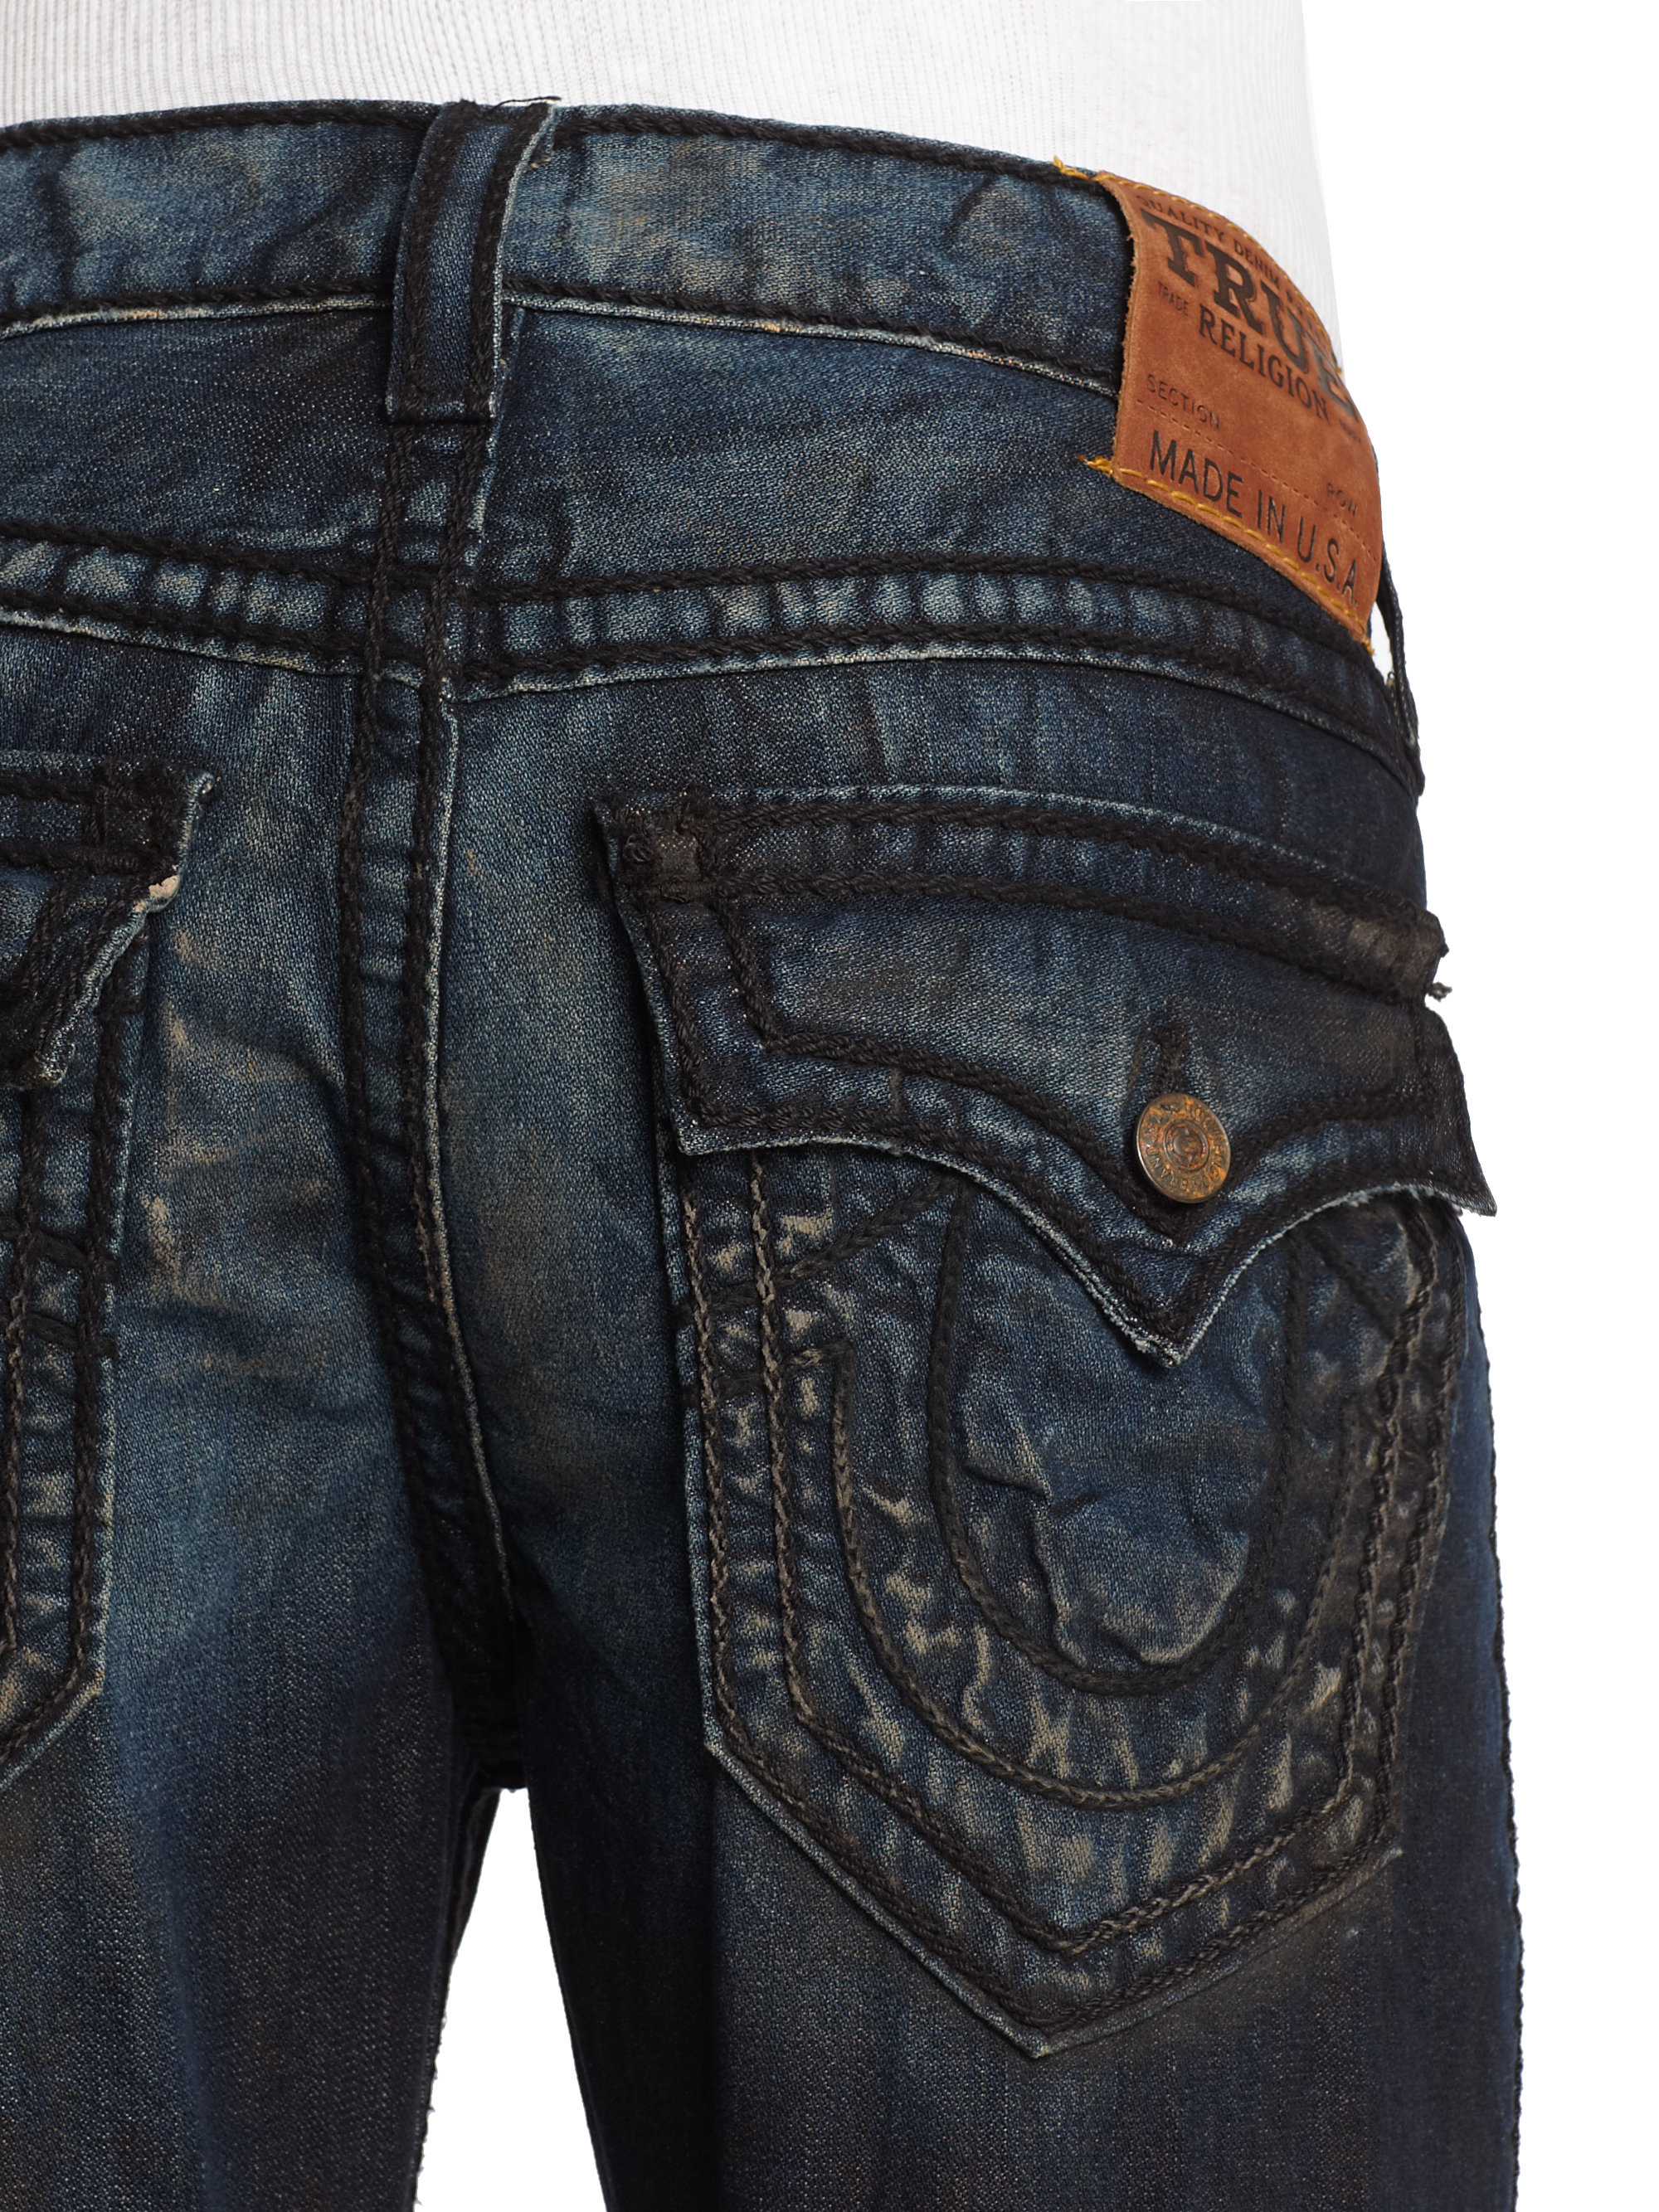 ae68582a0 True Religion Ricky Rope Stitch Straightleg Jeans in Blue for Men - Lyst